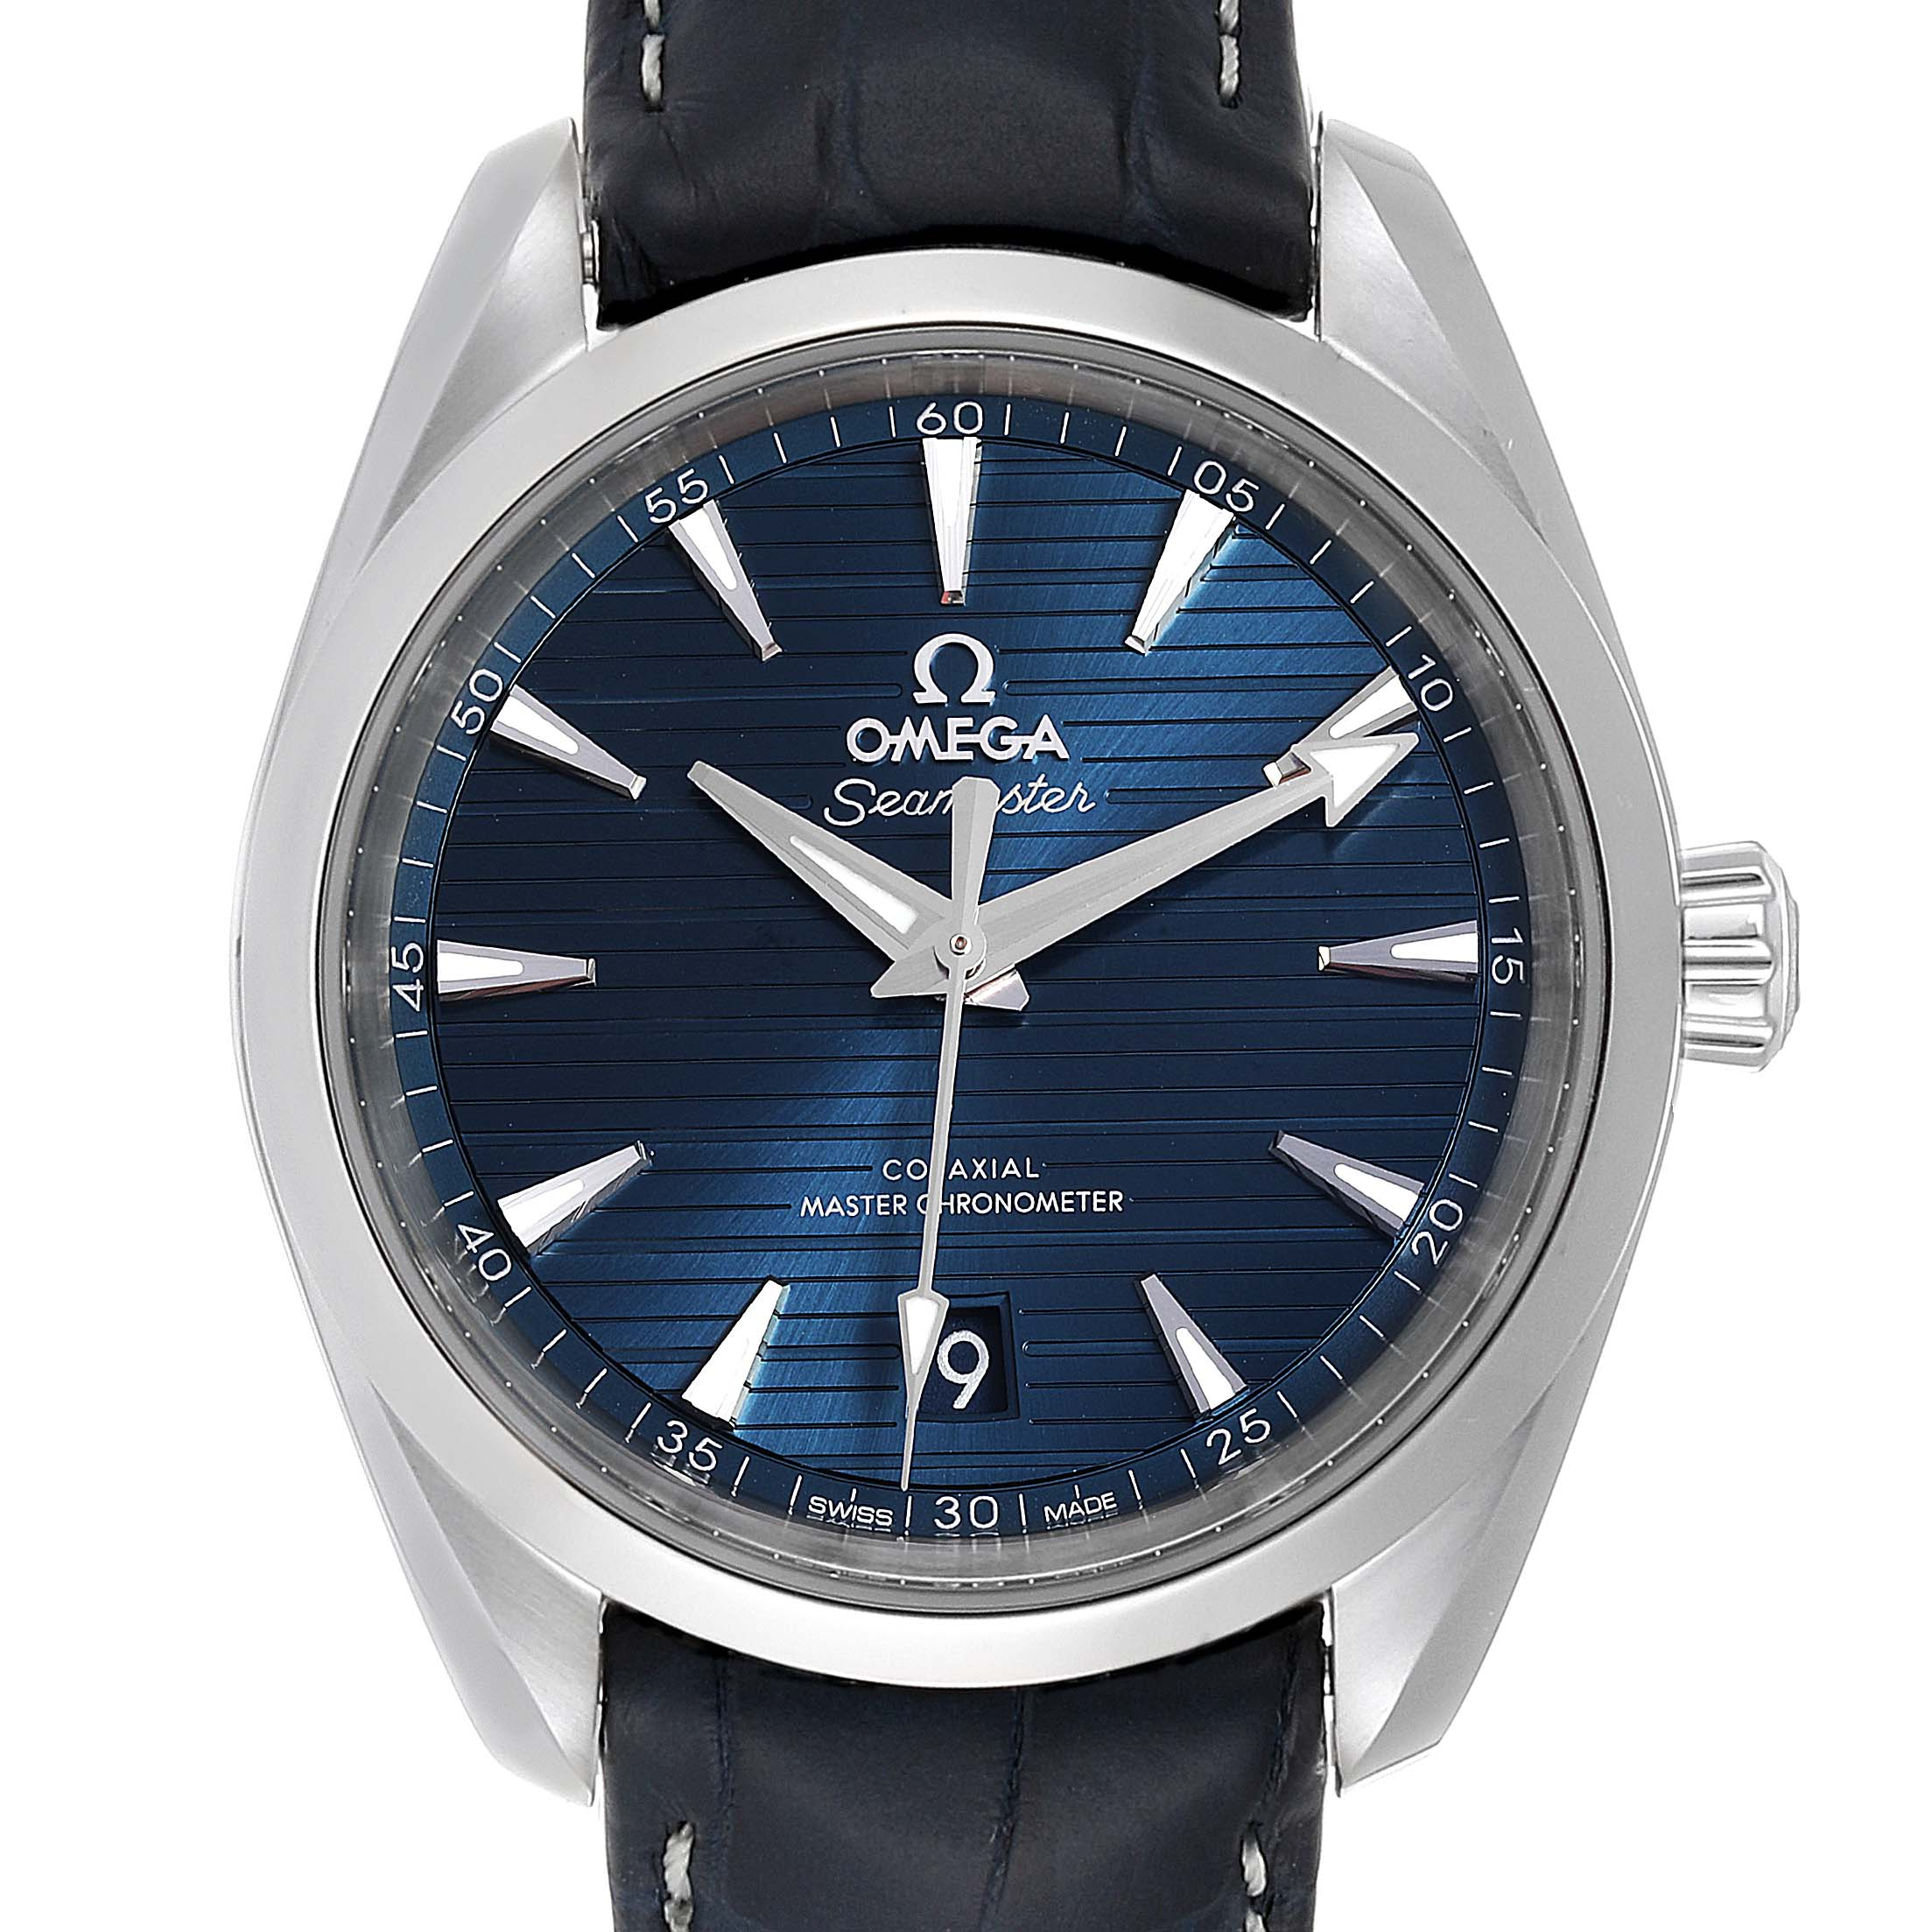 Omega Seamaster Aqua Terra Blue Dial Watch 220.13.38.20.03.001 Box Card